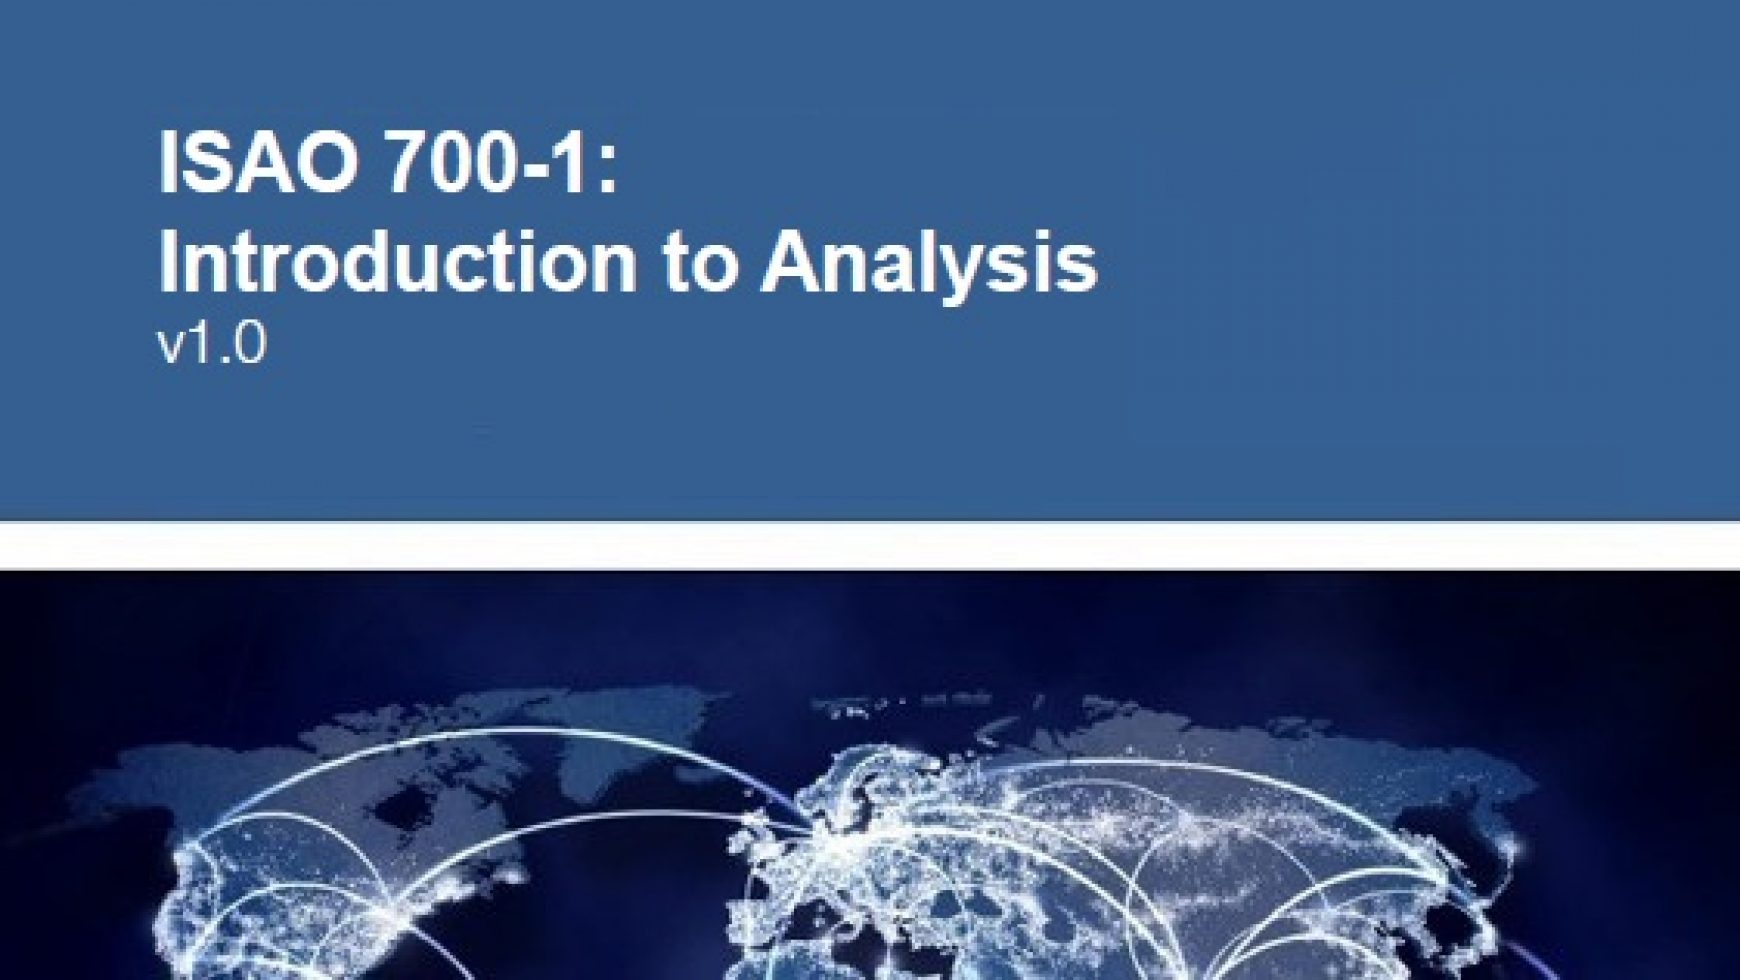 ISAO 700-1: Introduction to Analysis